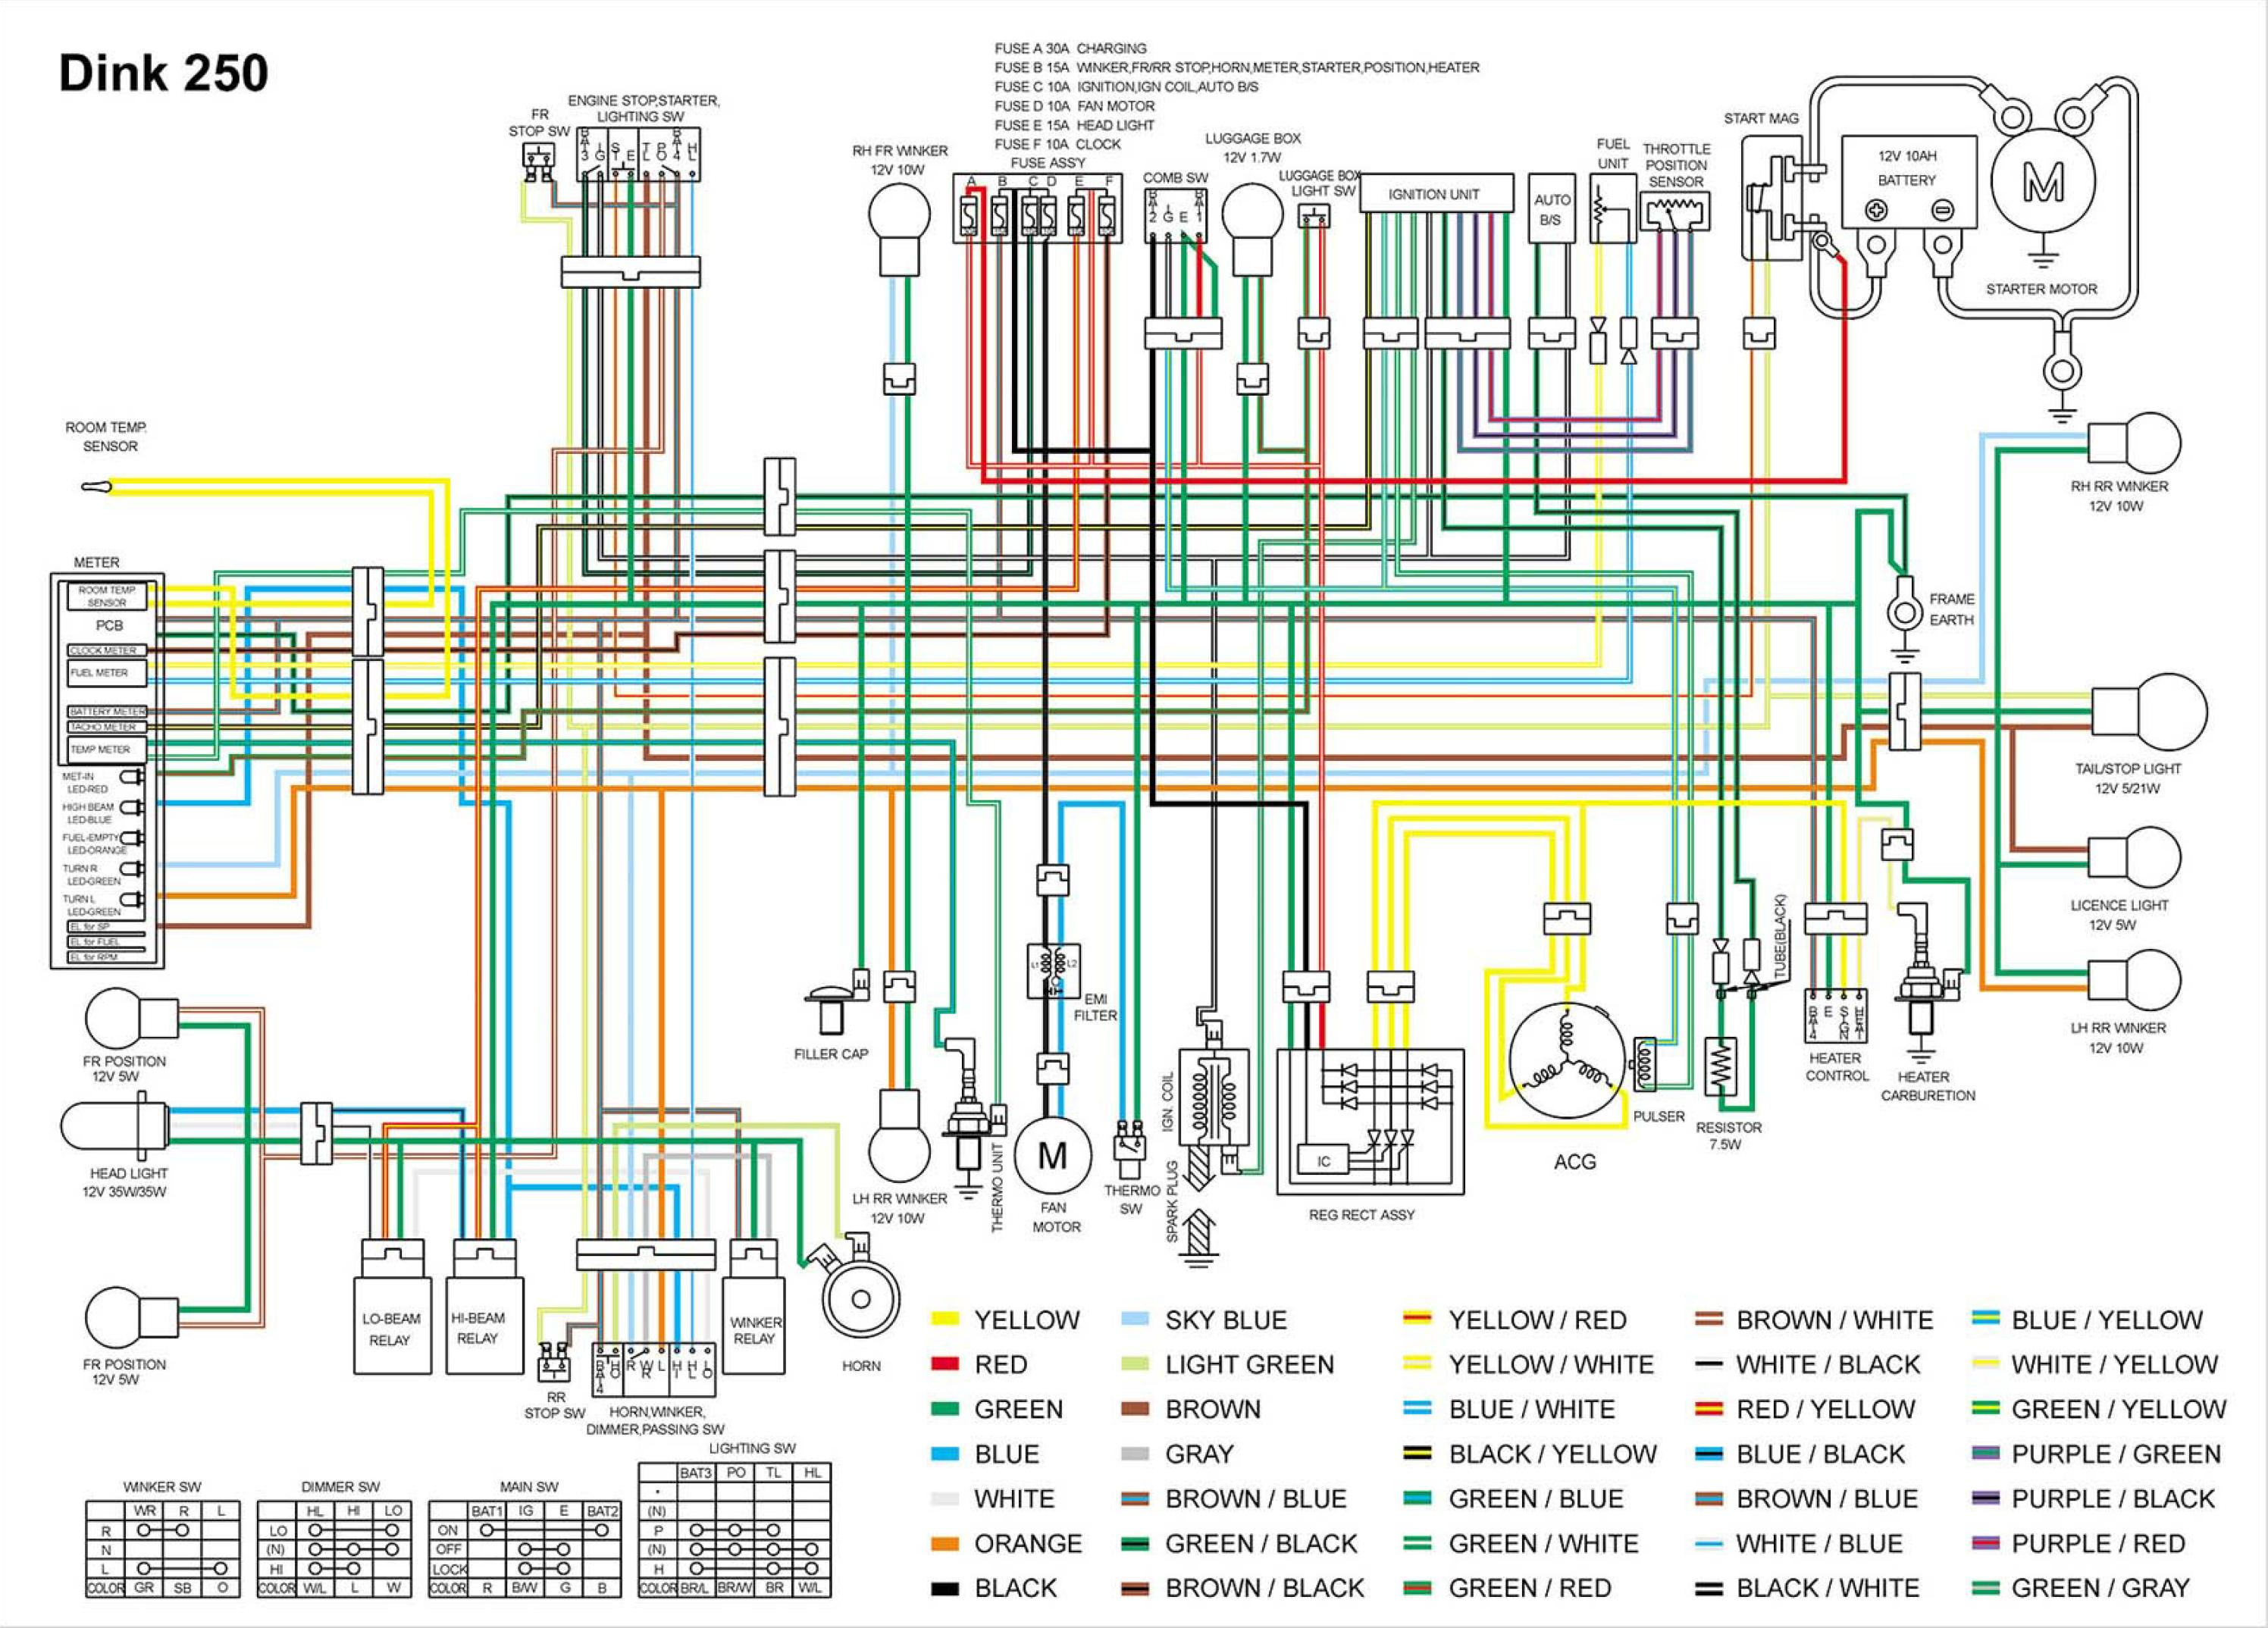 moto_schem_Kymco_Dink_250_D250 diagrams 15991169 holiday rambler wiring diagram holiday quadzilla 250 wiring diagram at gsmx.co